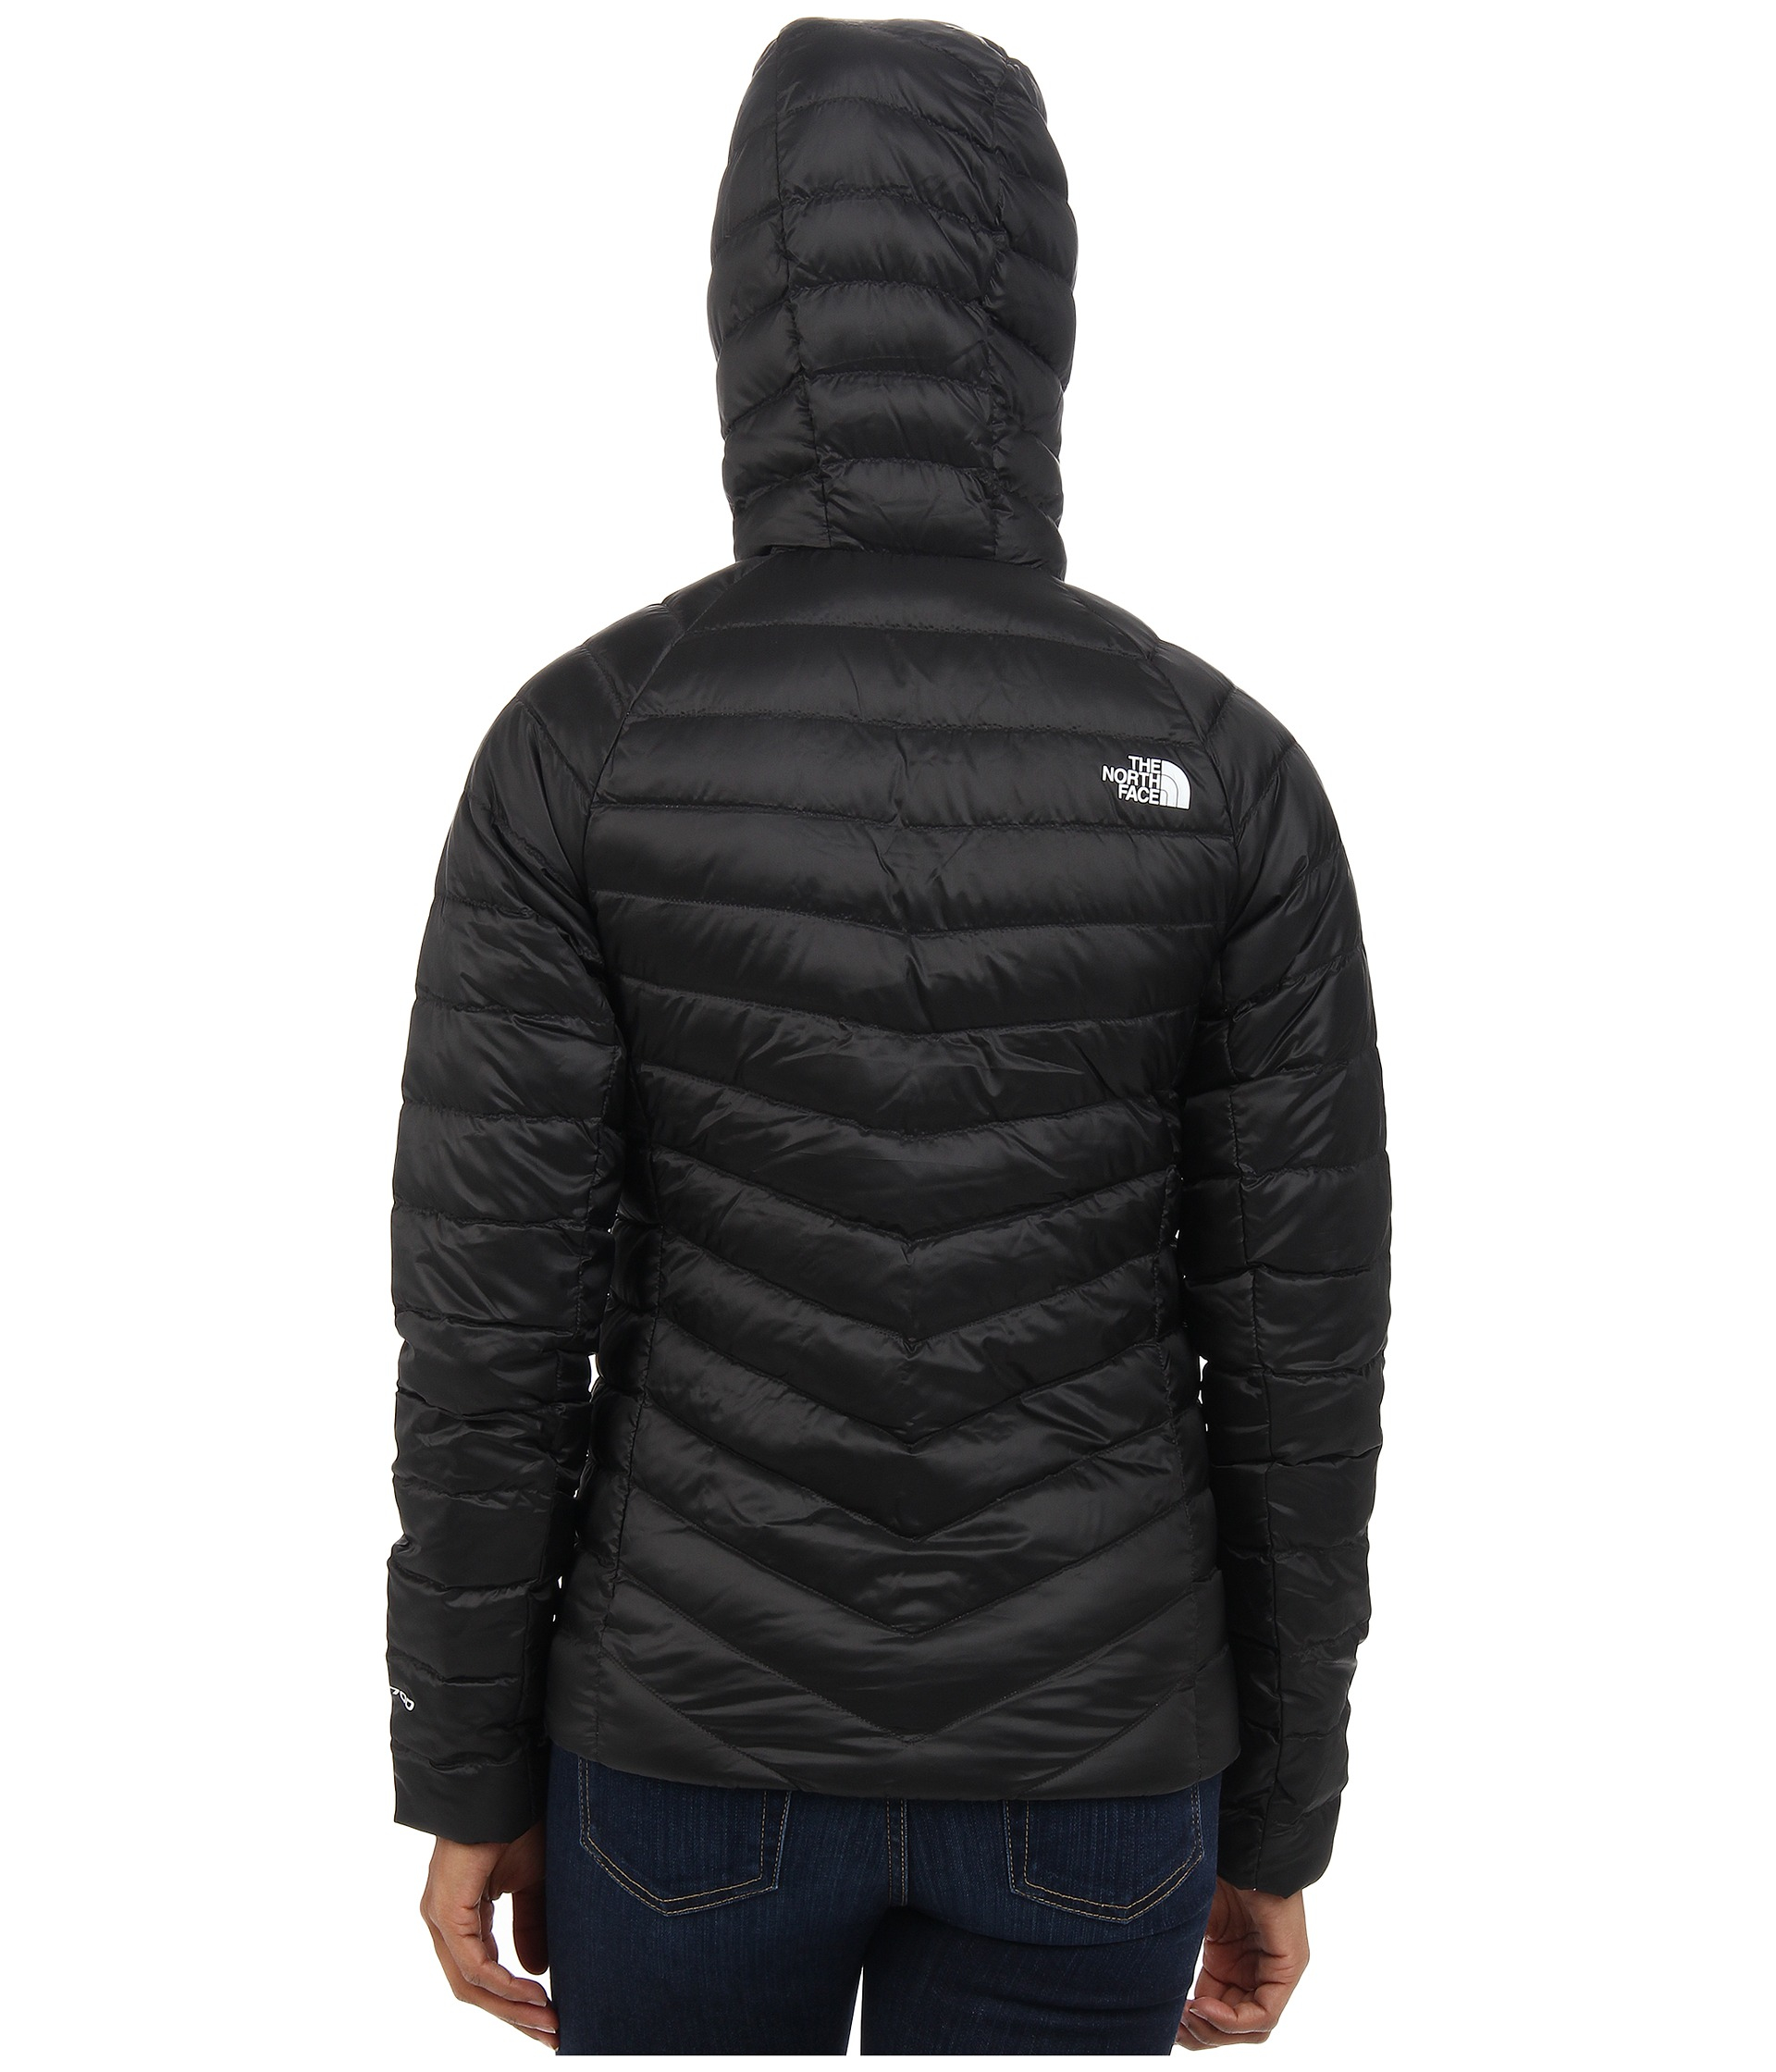 25f8276edc68 Lyst - The North Face Tonnerro Hoodie in Black